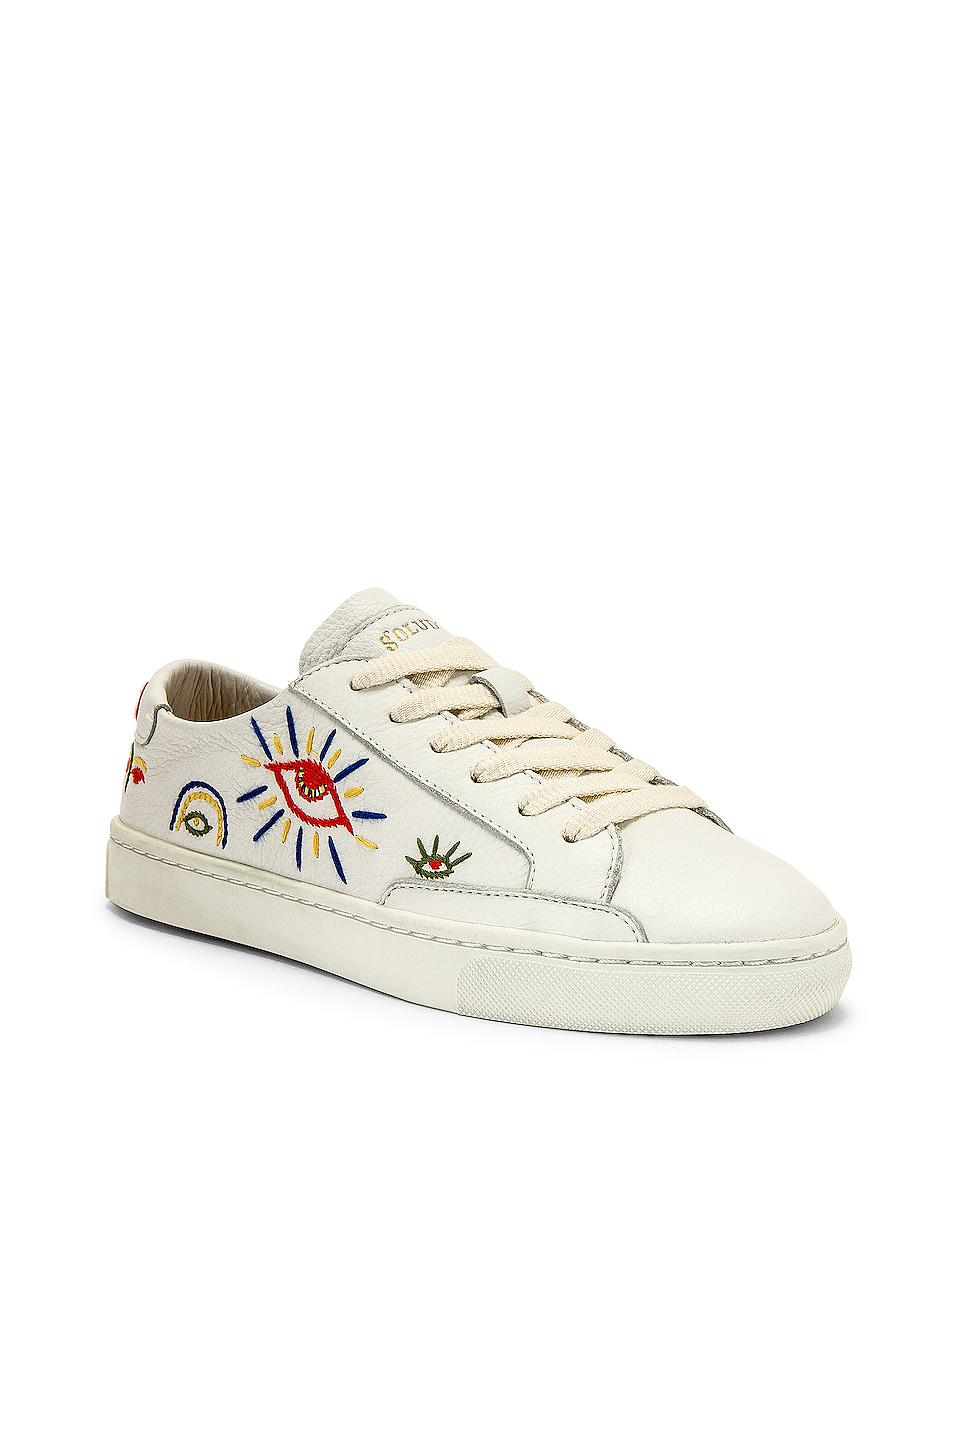 Soludos Leather Ibiza Look Sneaker in